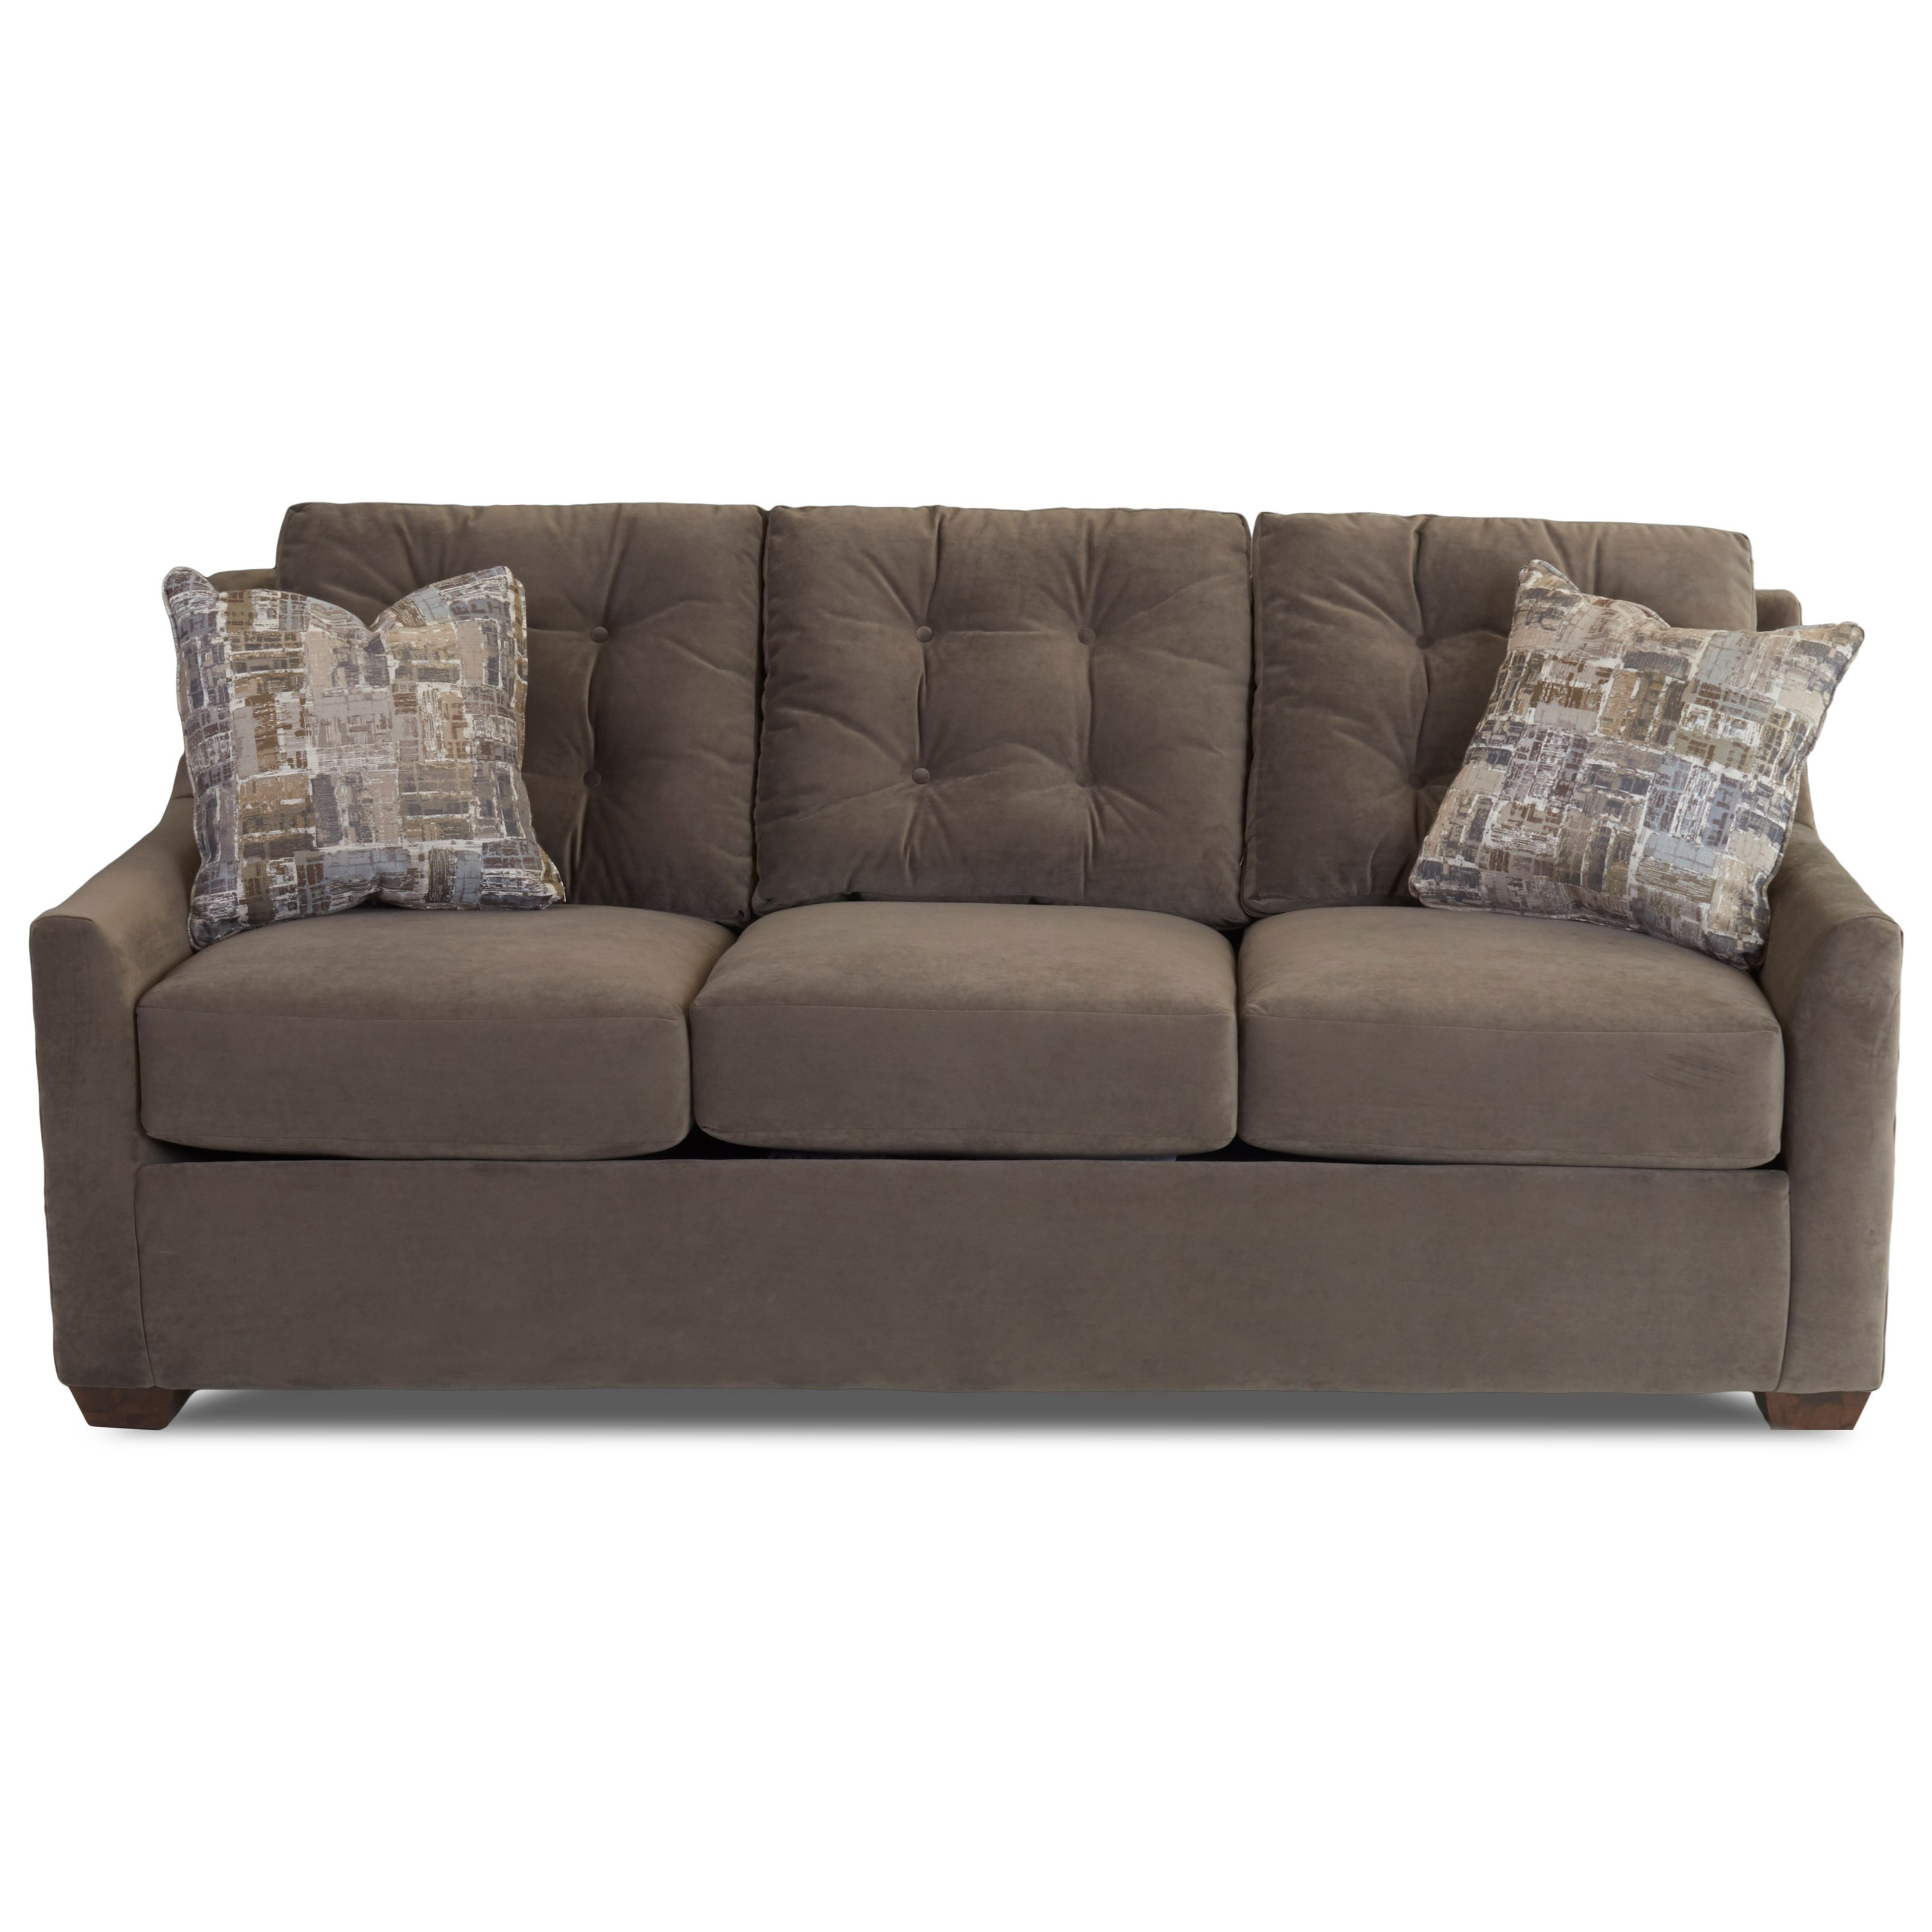 Sofa with Button Tufting and InnerSpring Cushions